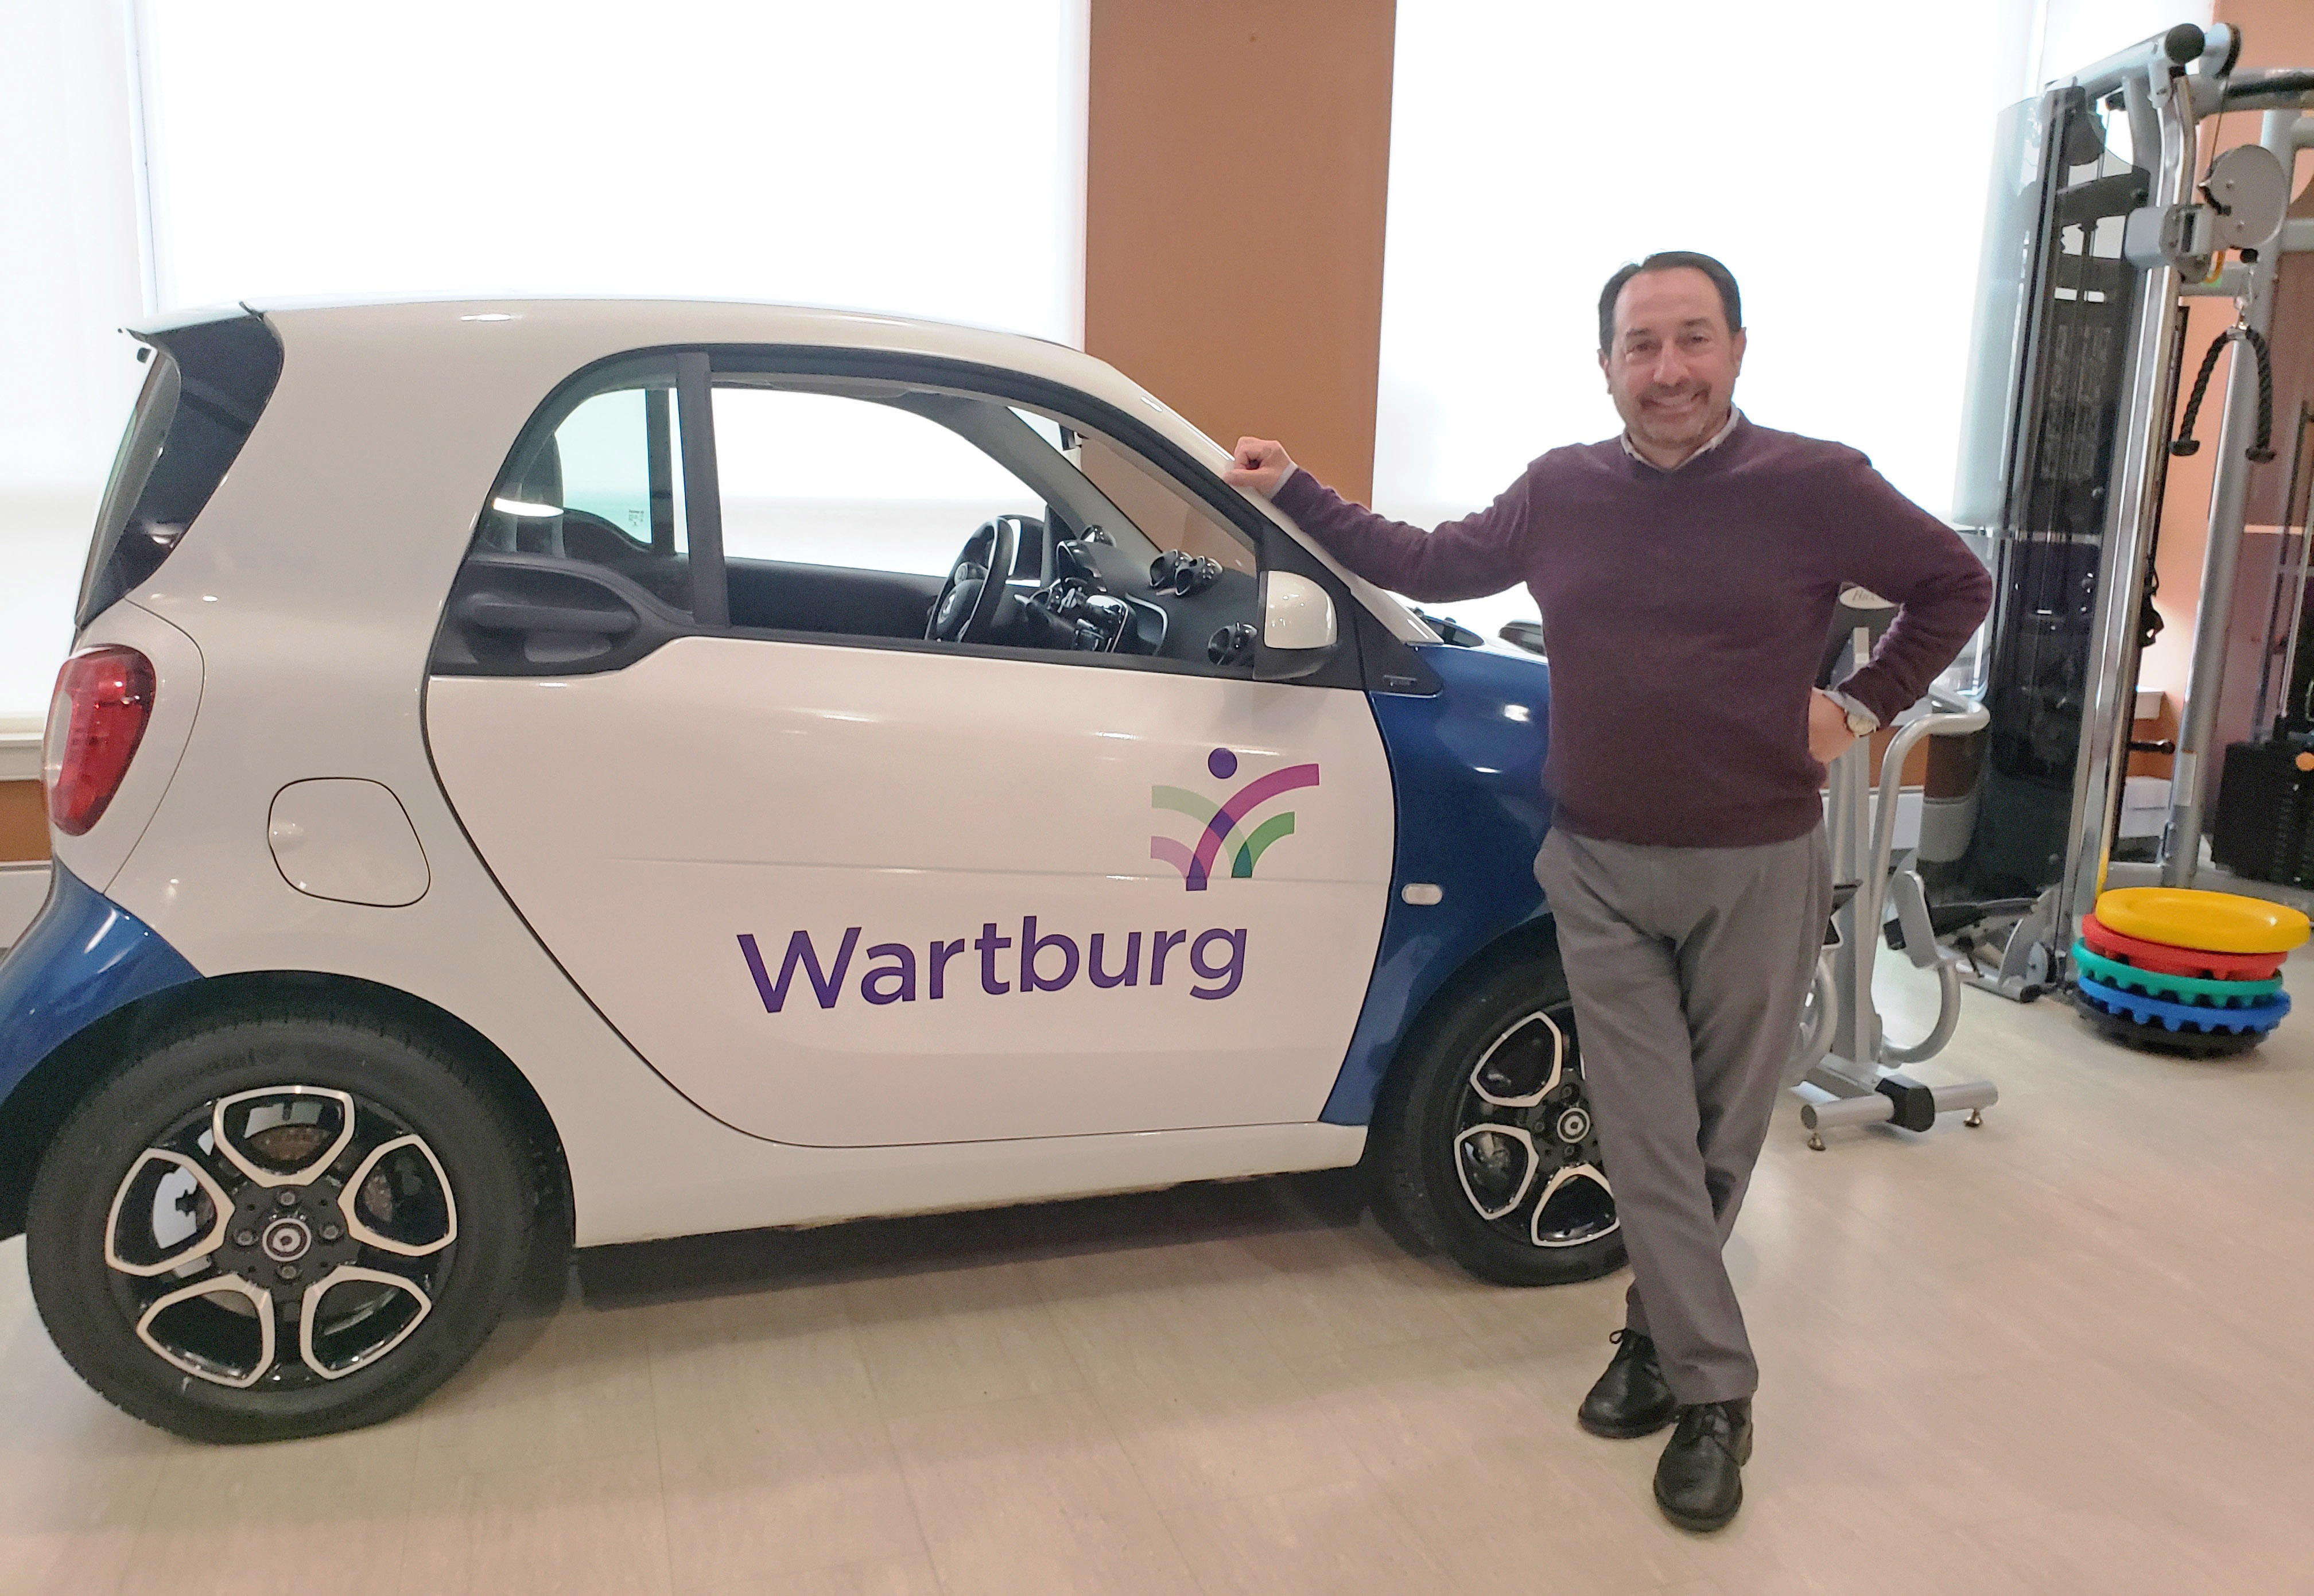 Wartburg Foundation Board Member, Mark Jacobs and the Smart Car he donated for real-life training in its state-of-the-art rehabilitation building.